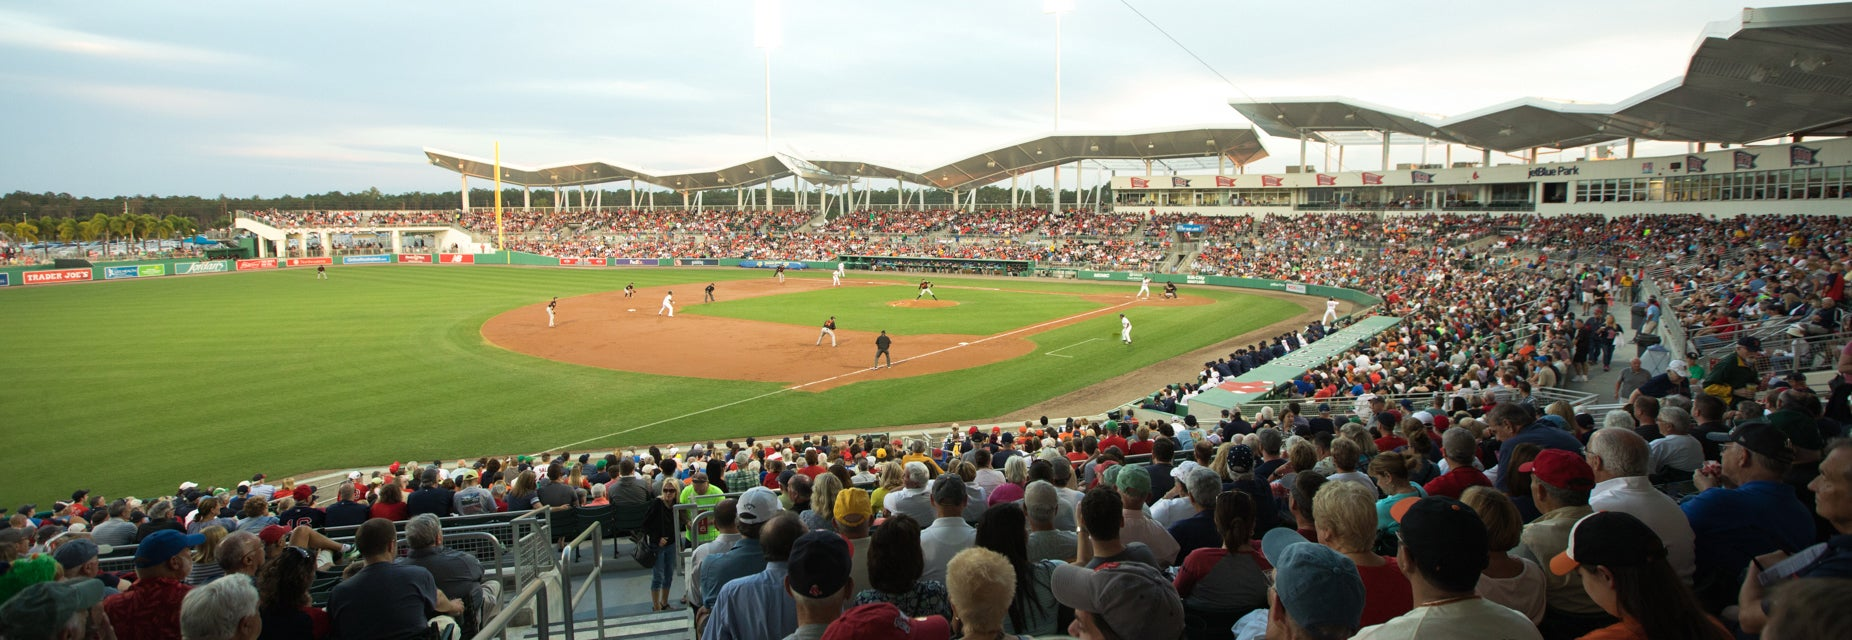 Seat view from Left Field Grandstand